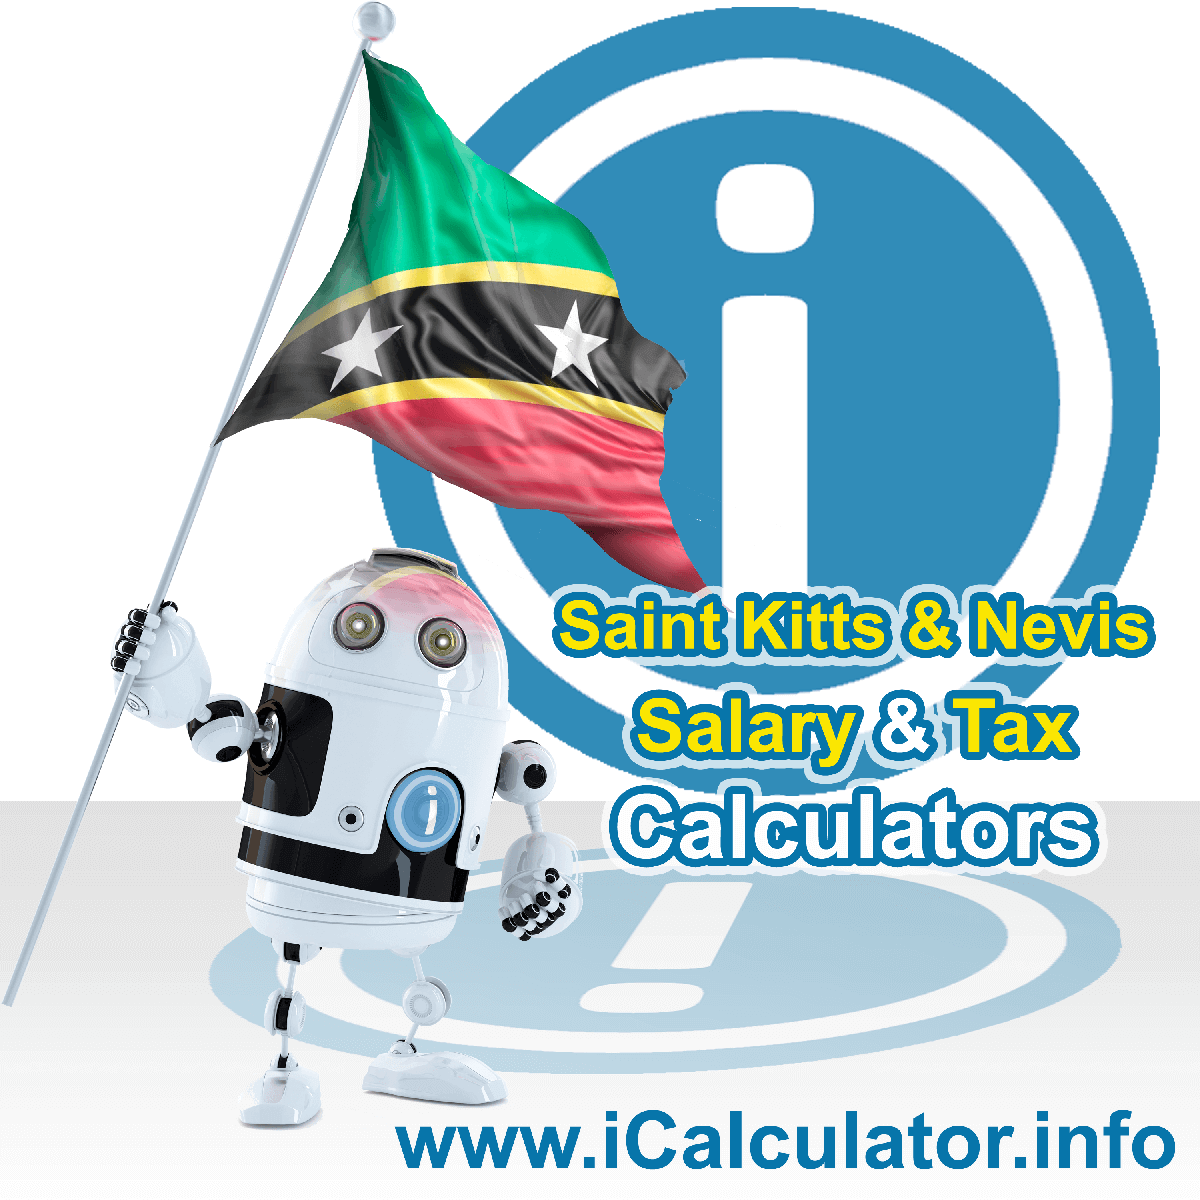 Saint Kitts And Nevis Tax Calculator. This image shows the Saint Kitts And Nevis flag and information relating to the tax formula for the Saint Kitts And Nevis Salary Calculator